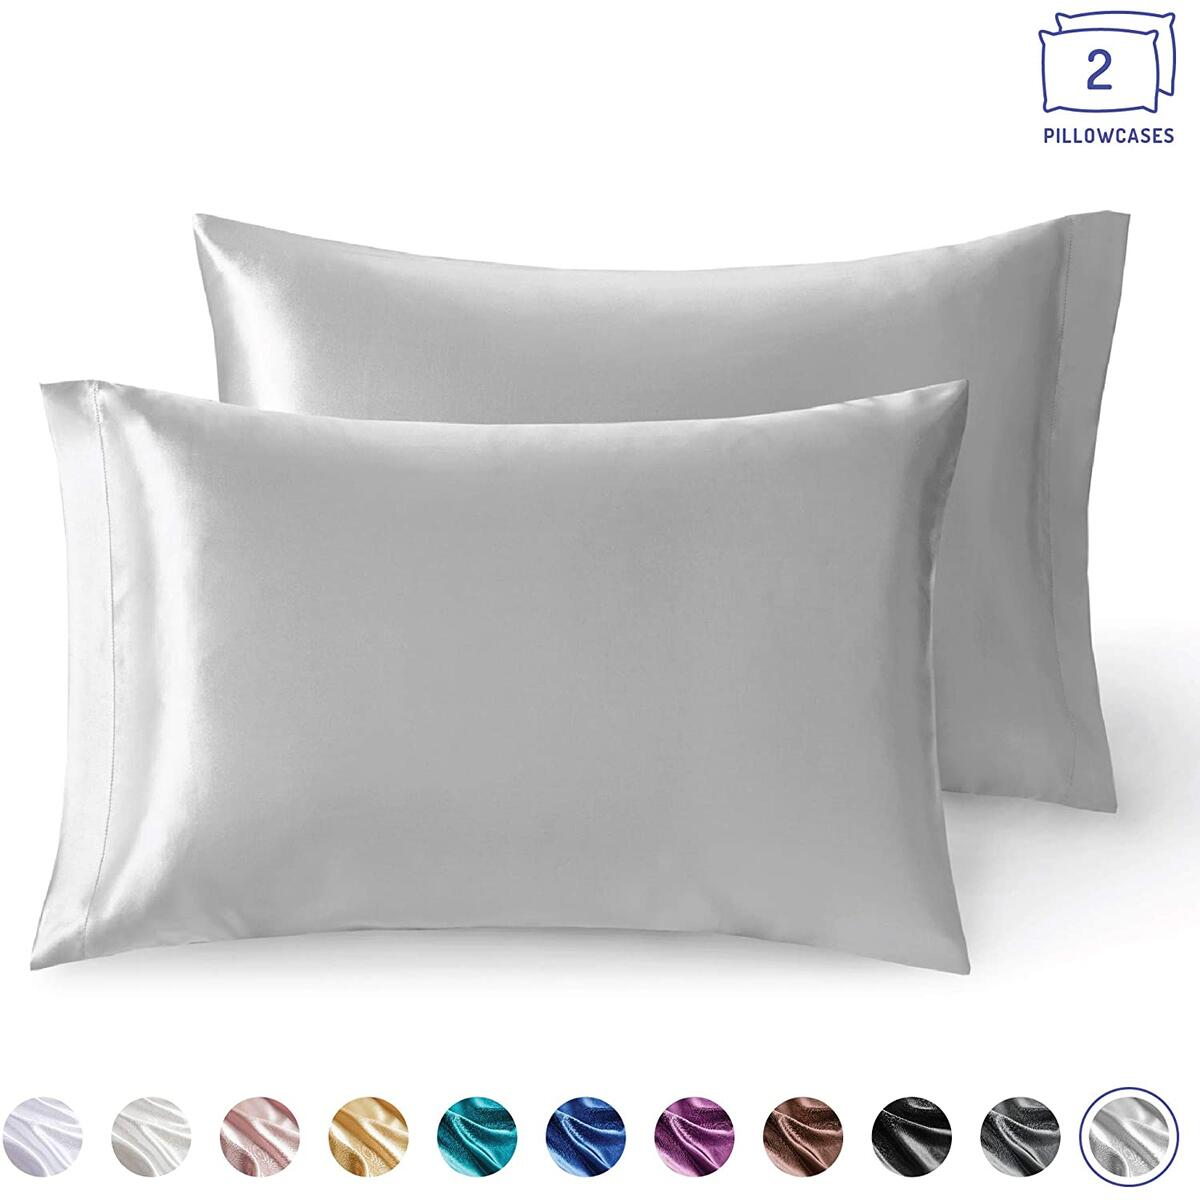 Satin Pillowcase King Size for Hair and Skin   Pillows Cases Set of 2, 20 x 40 Inch   Cool Pillow Case Reduce Skin Irritation & Frizzy Hair   Retains Color in Easy Machine Wash & Dry